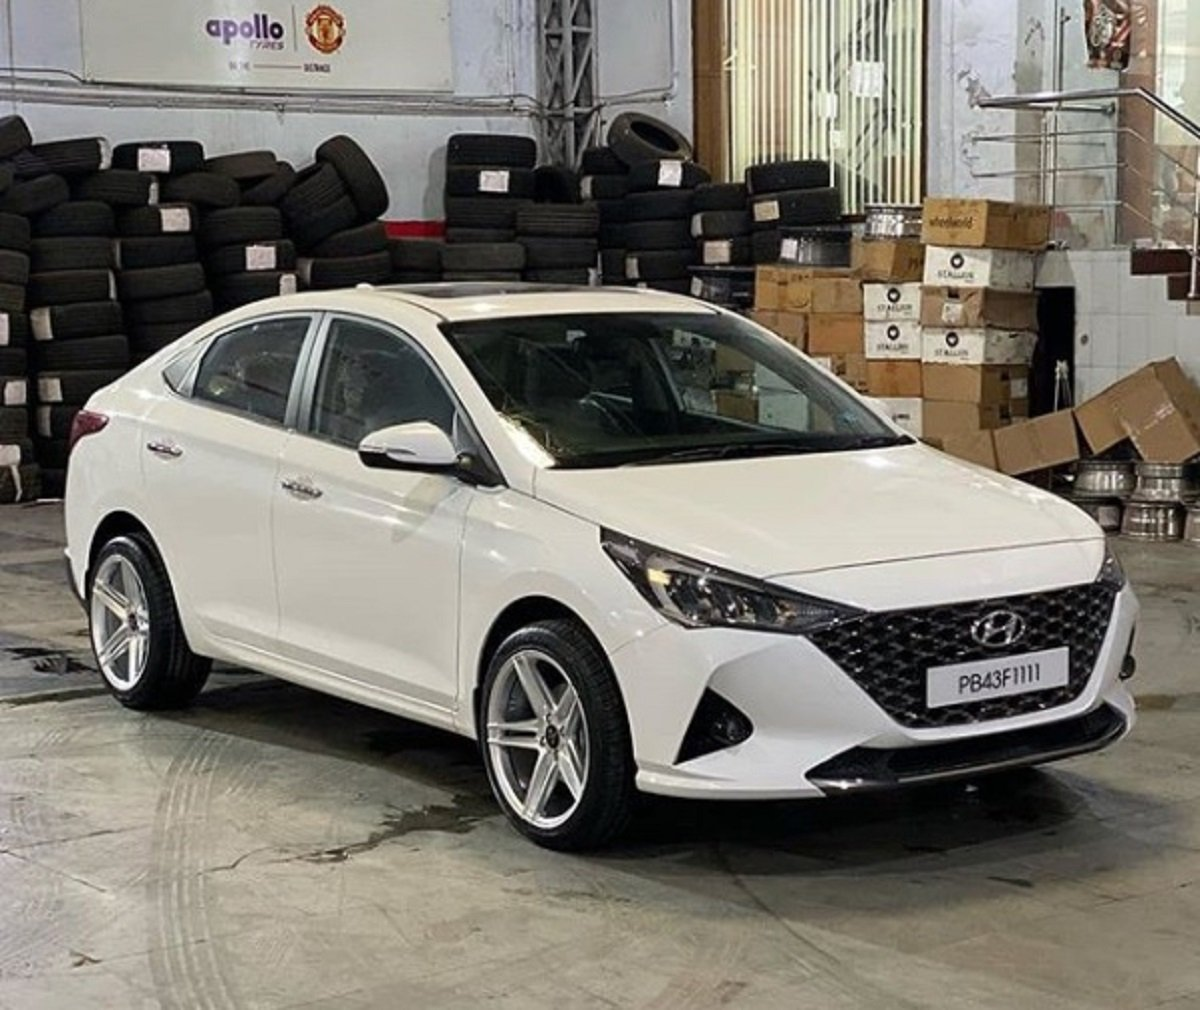 First-Ever New Hyundai Verna of Punjab Gets Sporty Mags and Low Profile Rubber